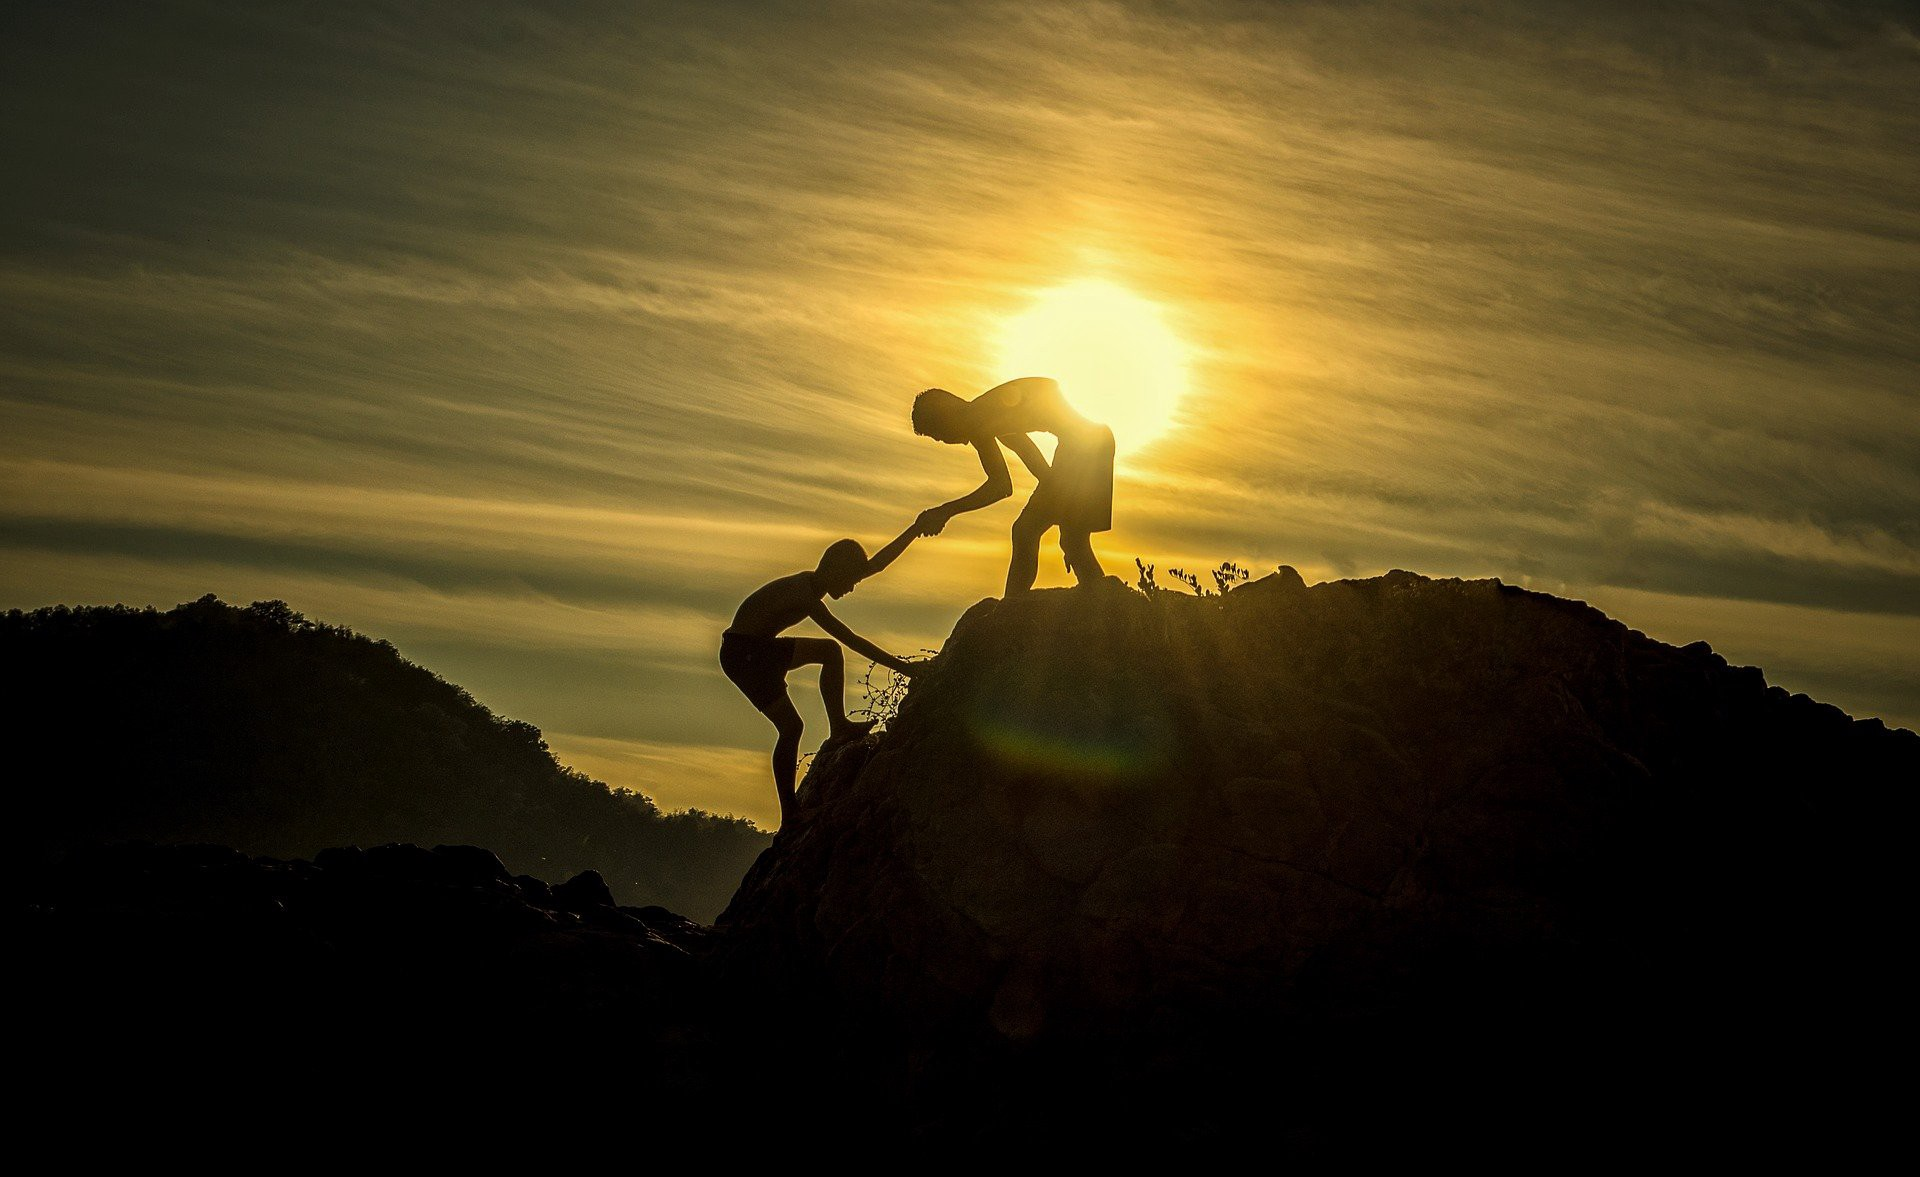 A silhouette of two boys on a mountain in front of the setting sun. One pulls the other up as he climbs.